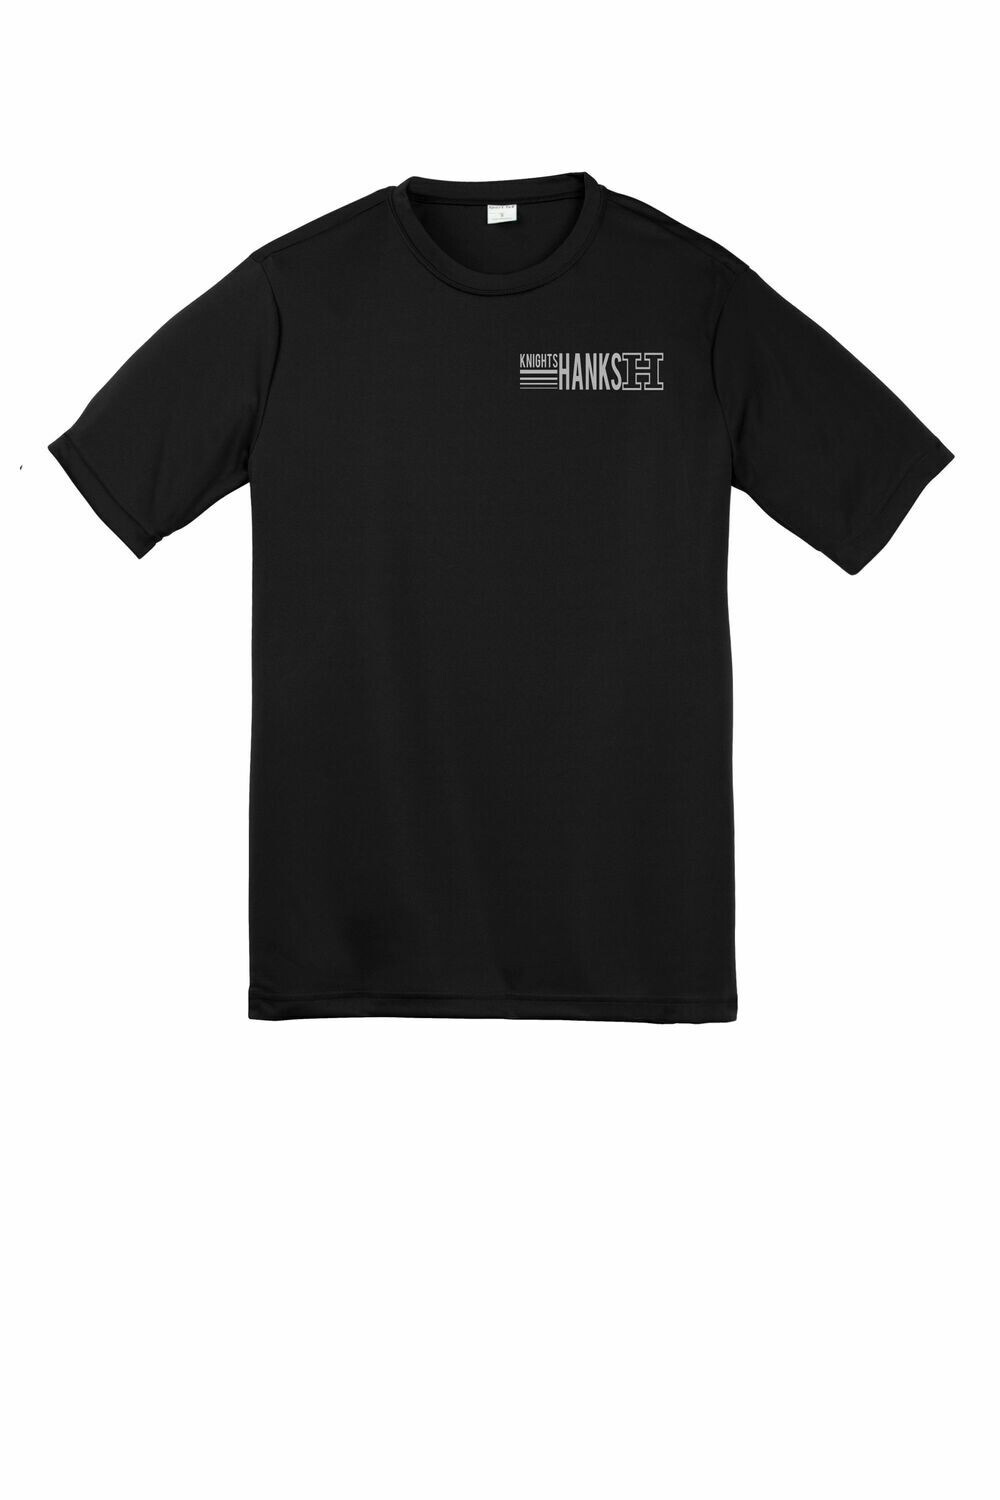 NEW! Line Logo Youth Moisture Wicking Tee